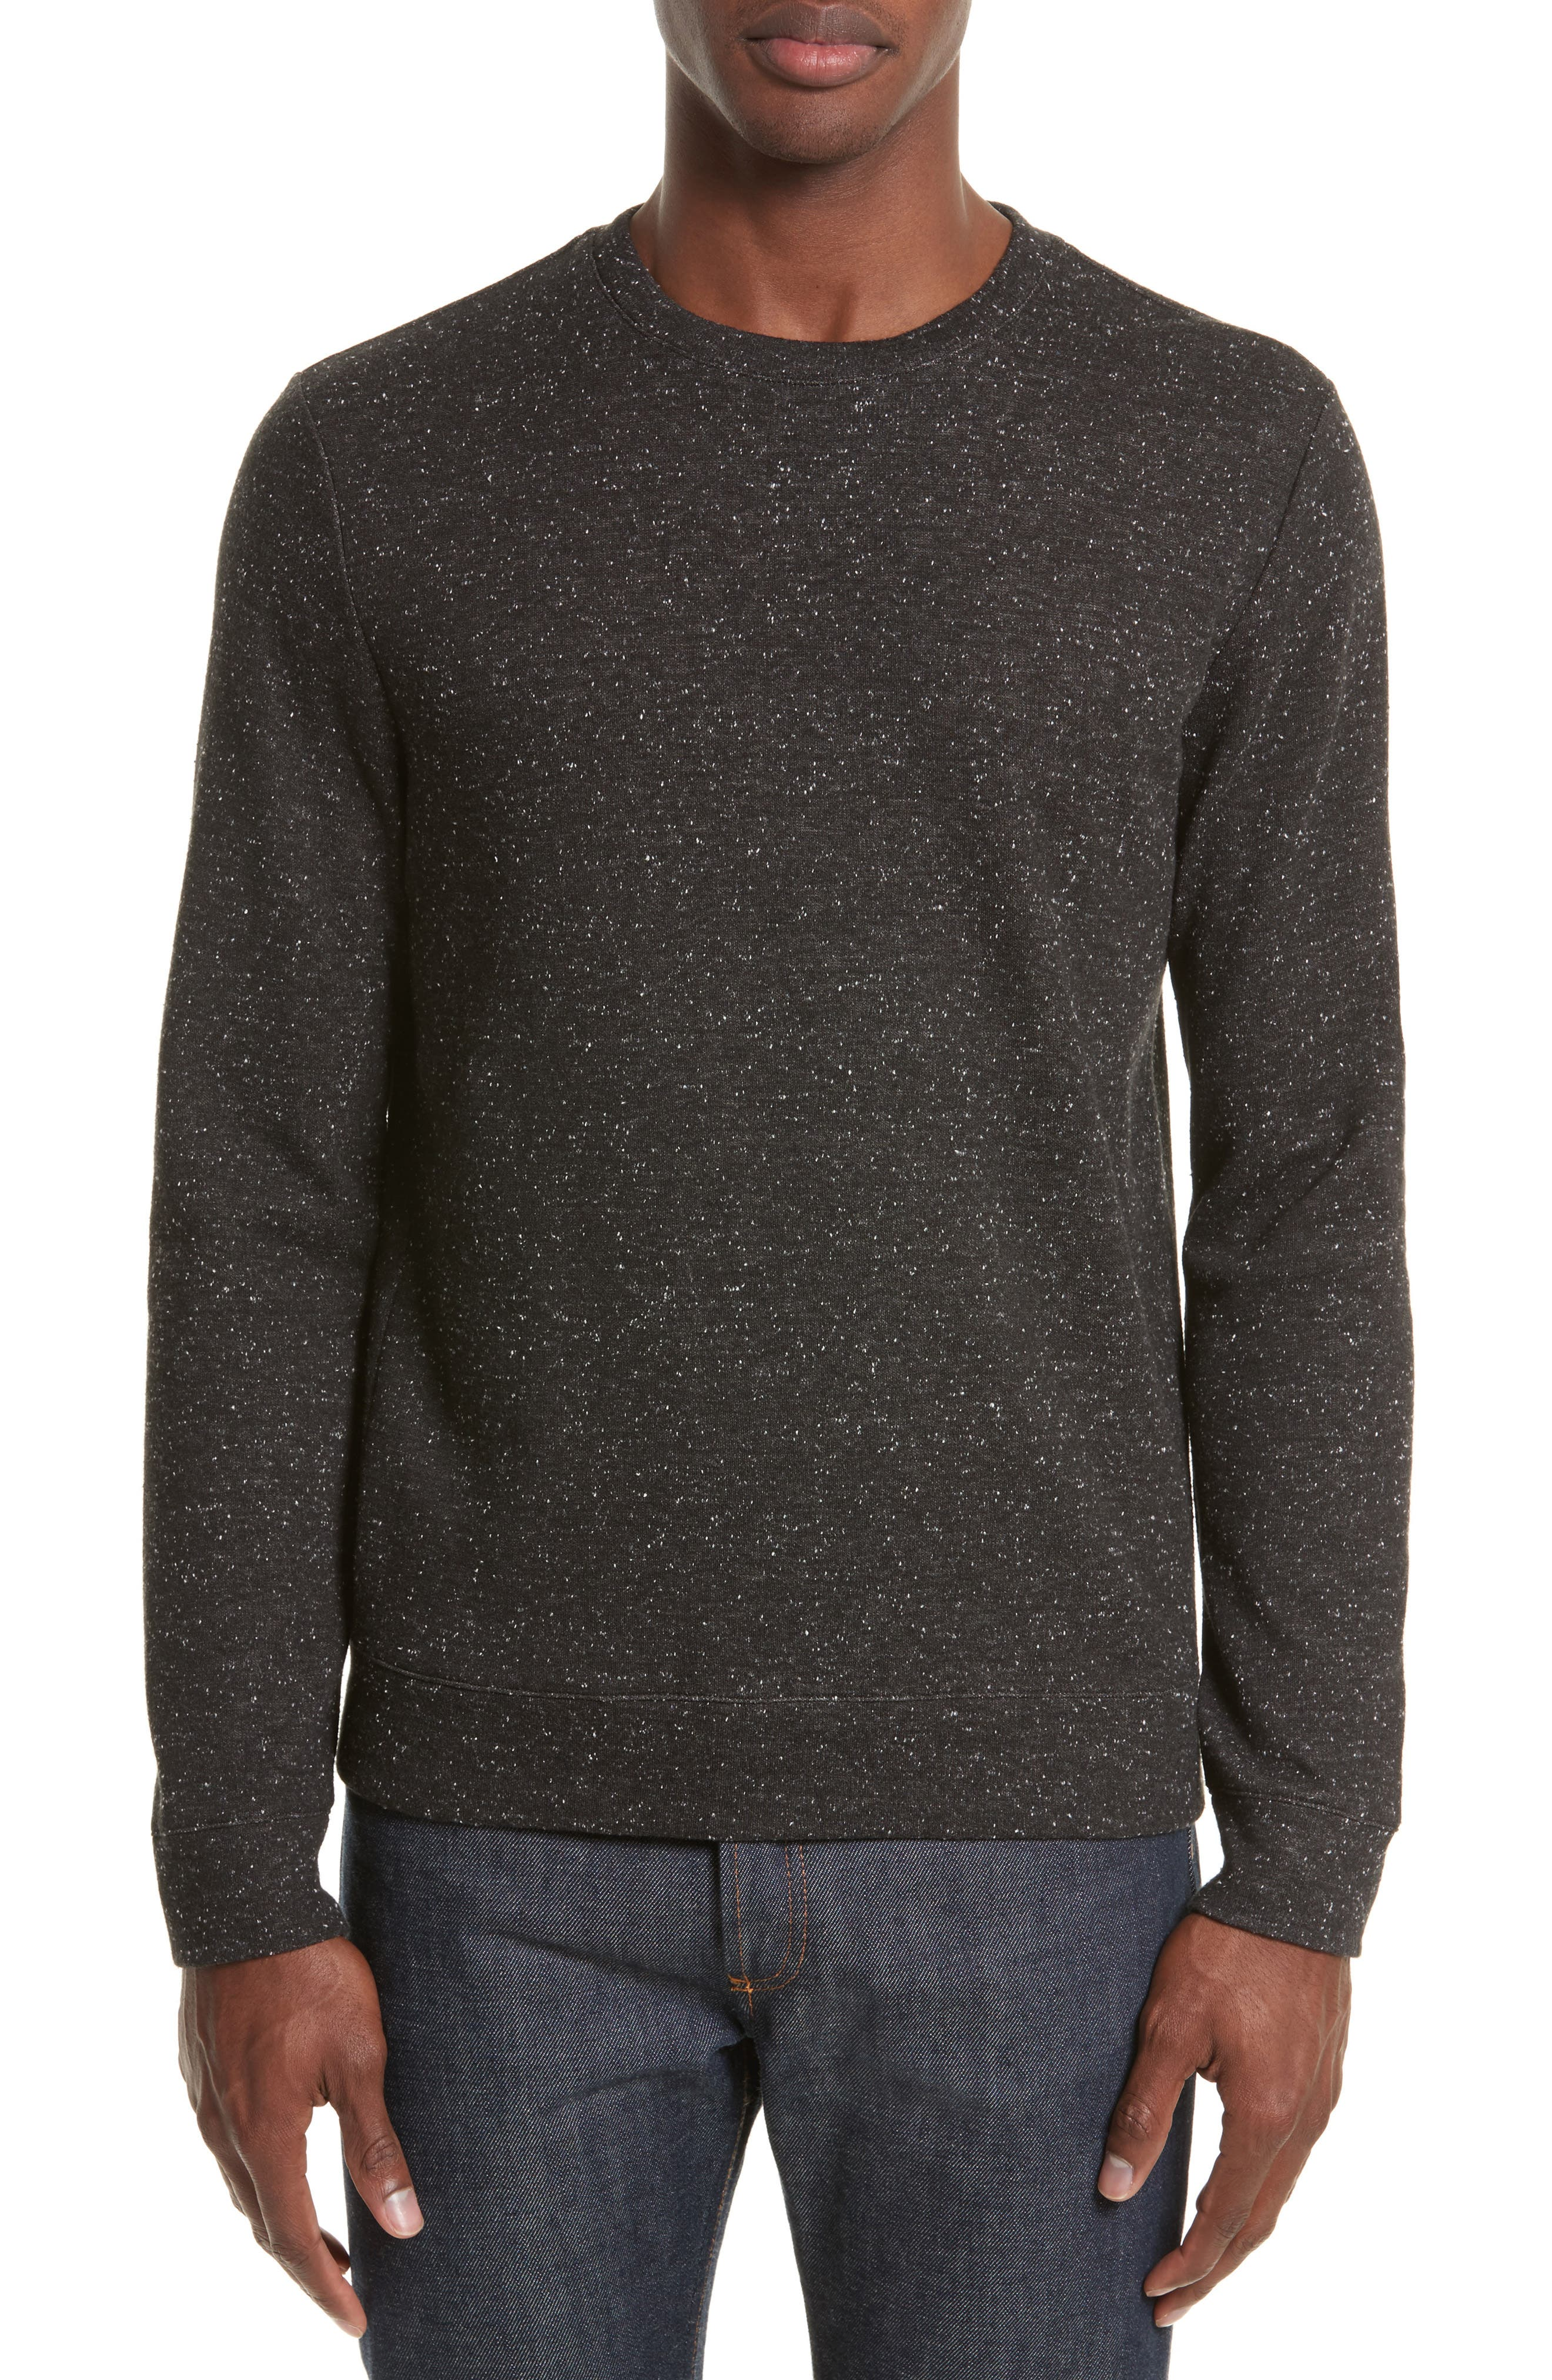 Speckle Sweat Track Sweater,                         Main,                         color, Anthracite